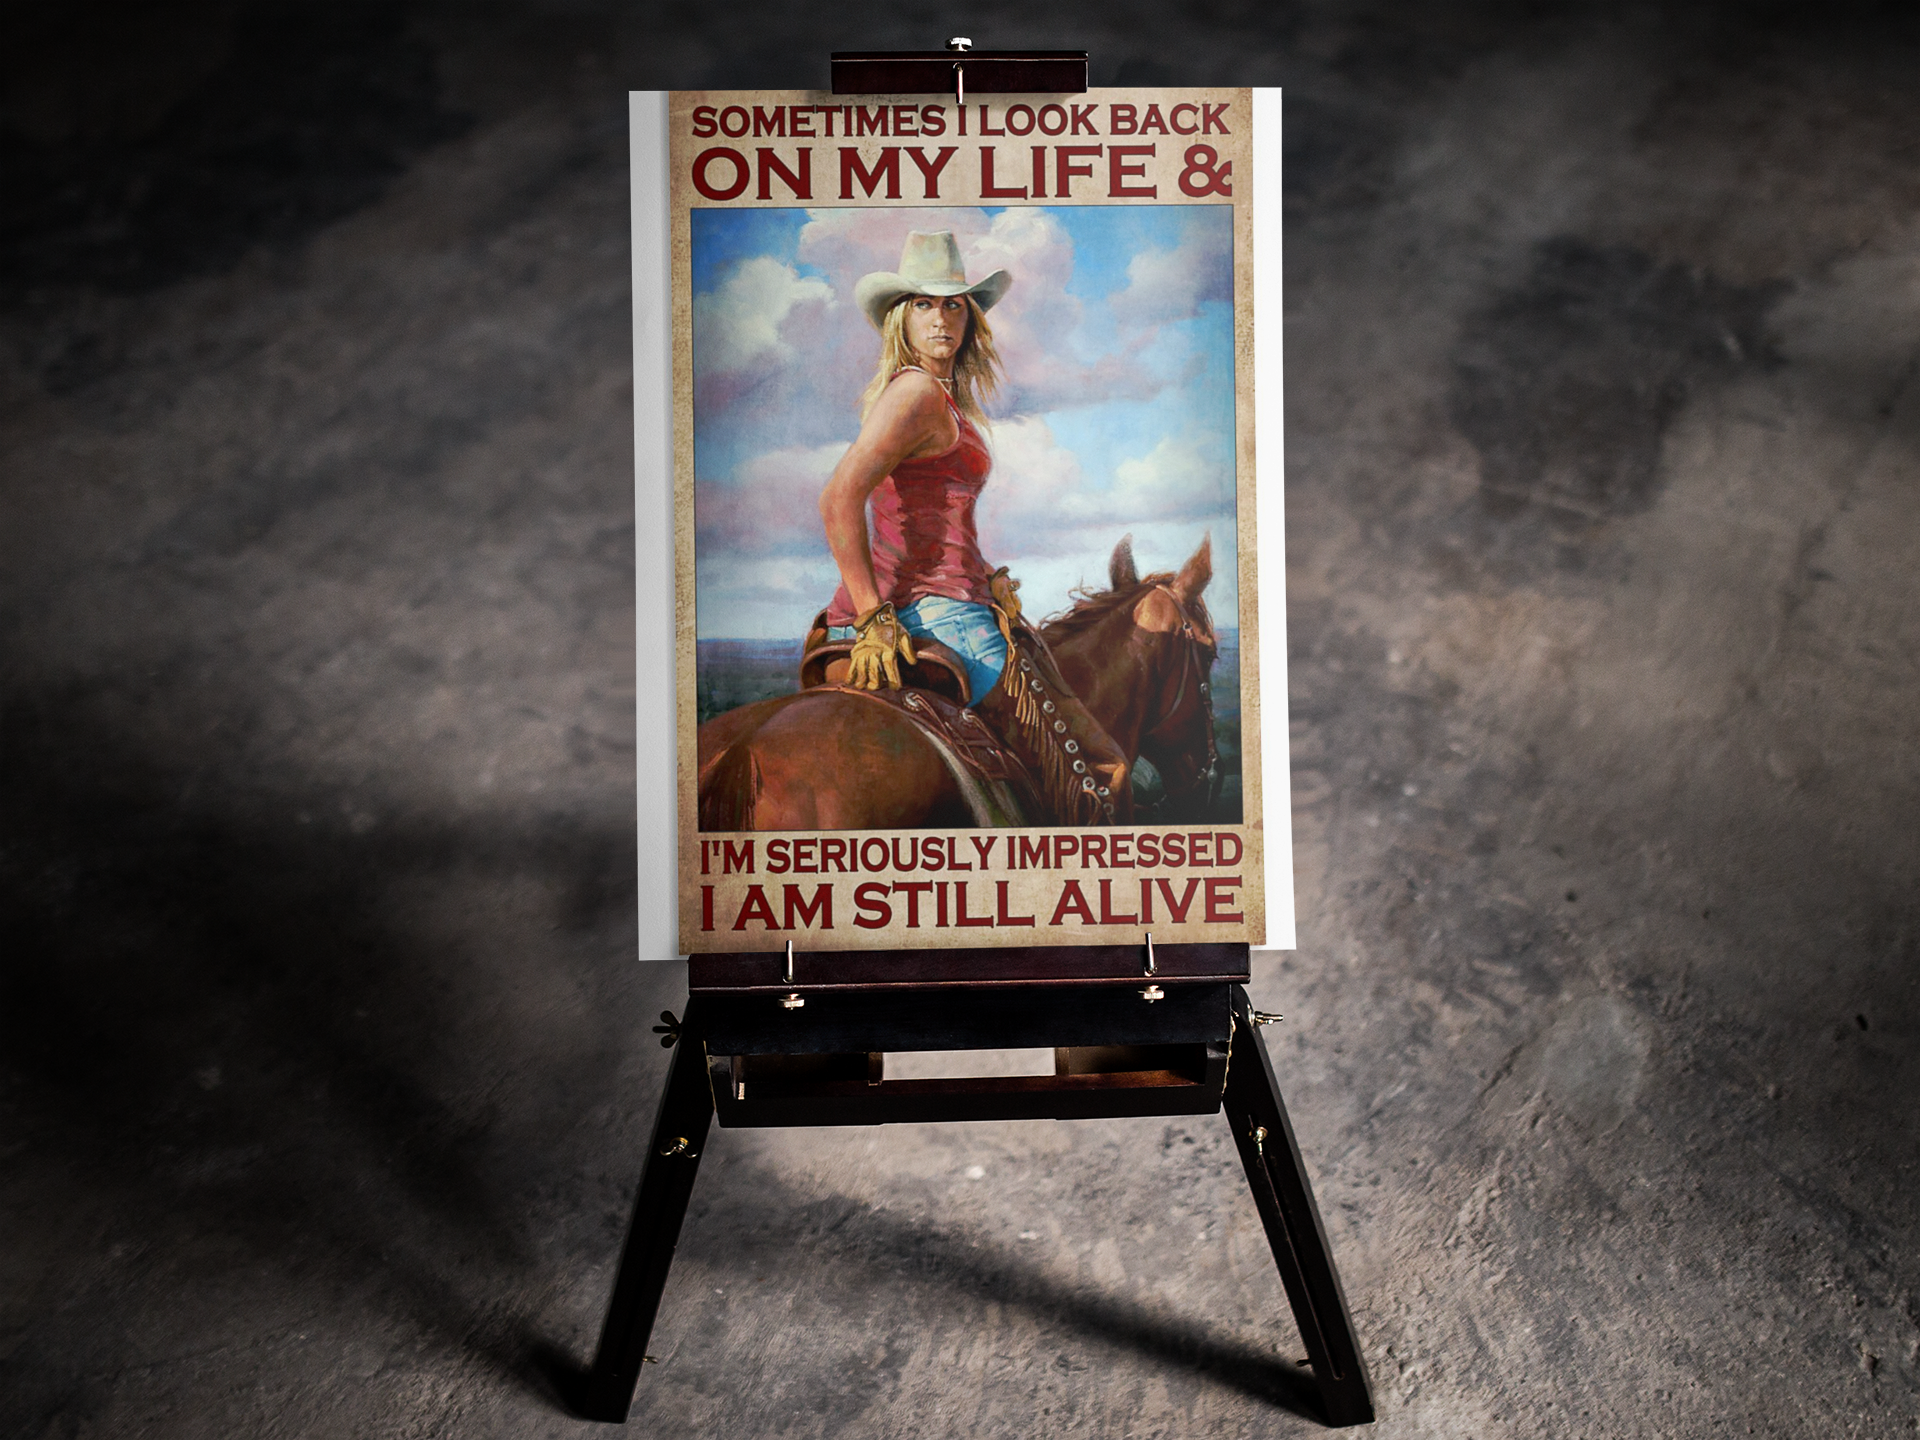 Sometimes I look back on my life and I'm seriously impressed I am still alive poster 17